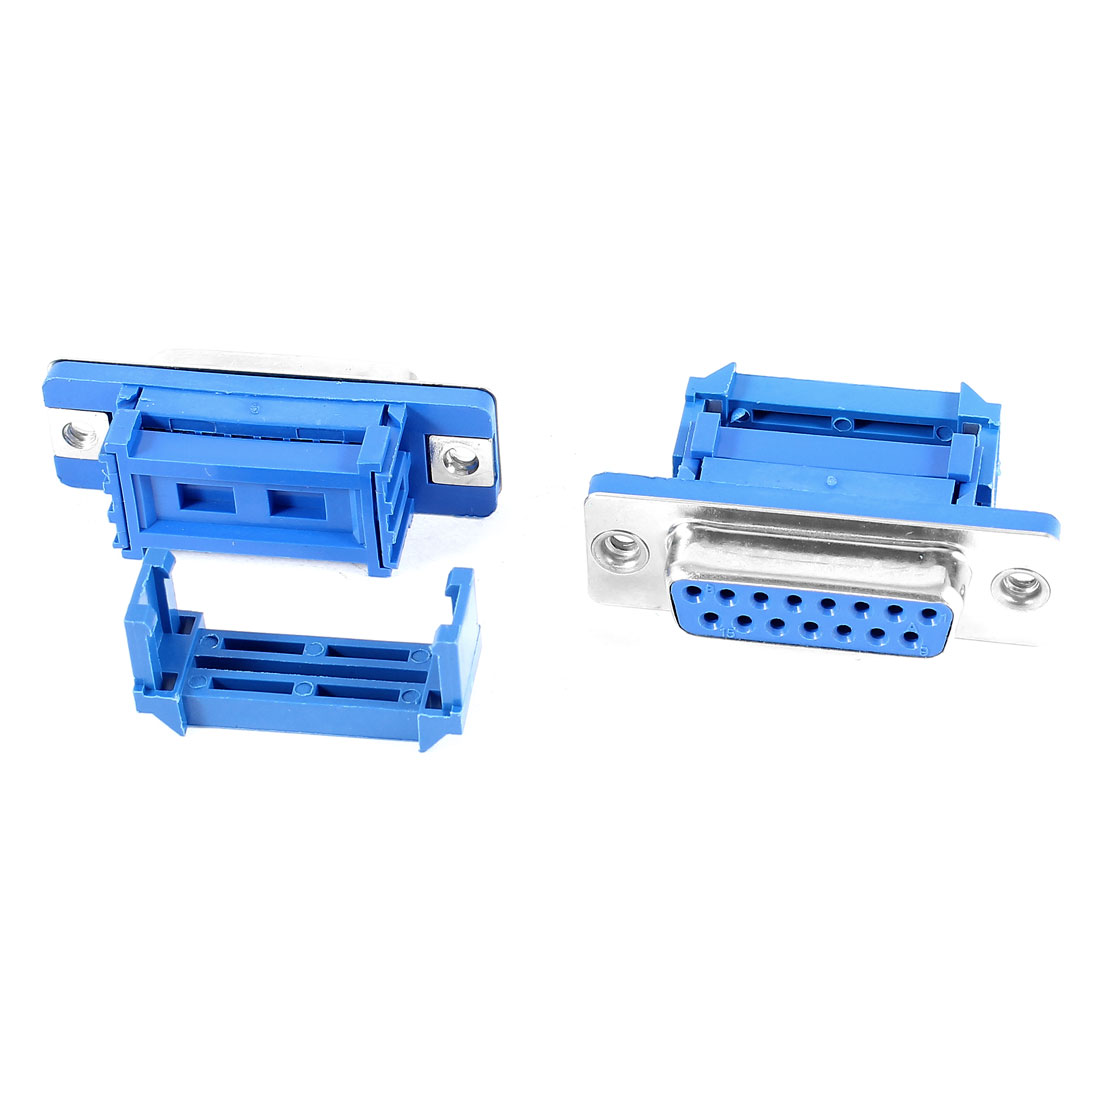 2 Pieces Serial Port DB15 15Pin Female IDC Jack Flat Ribbon Cable Connector Blue